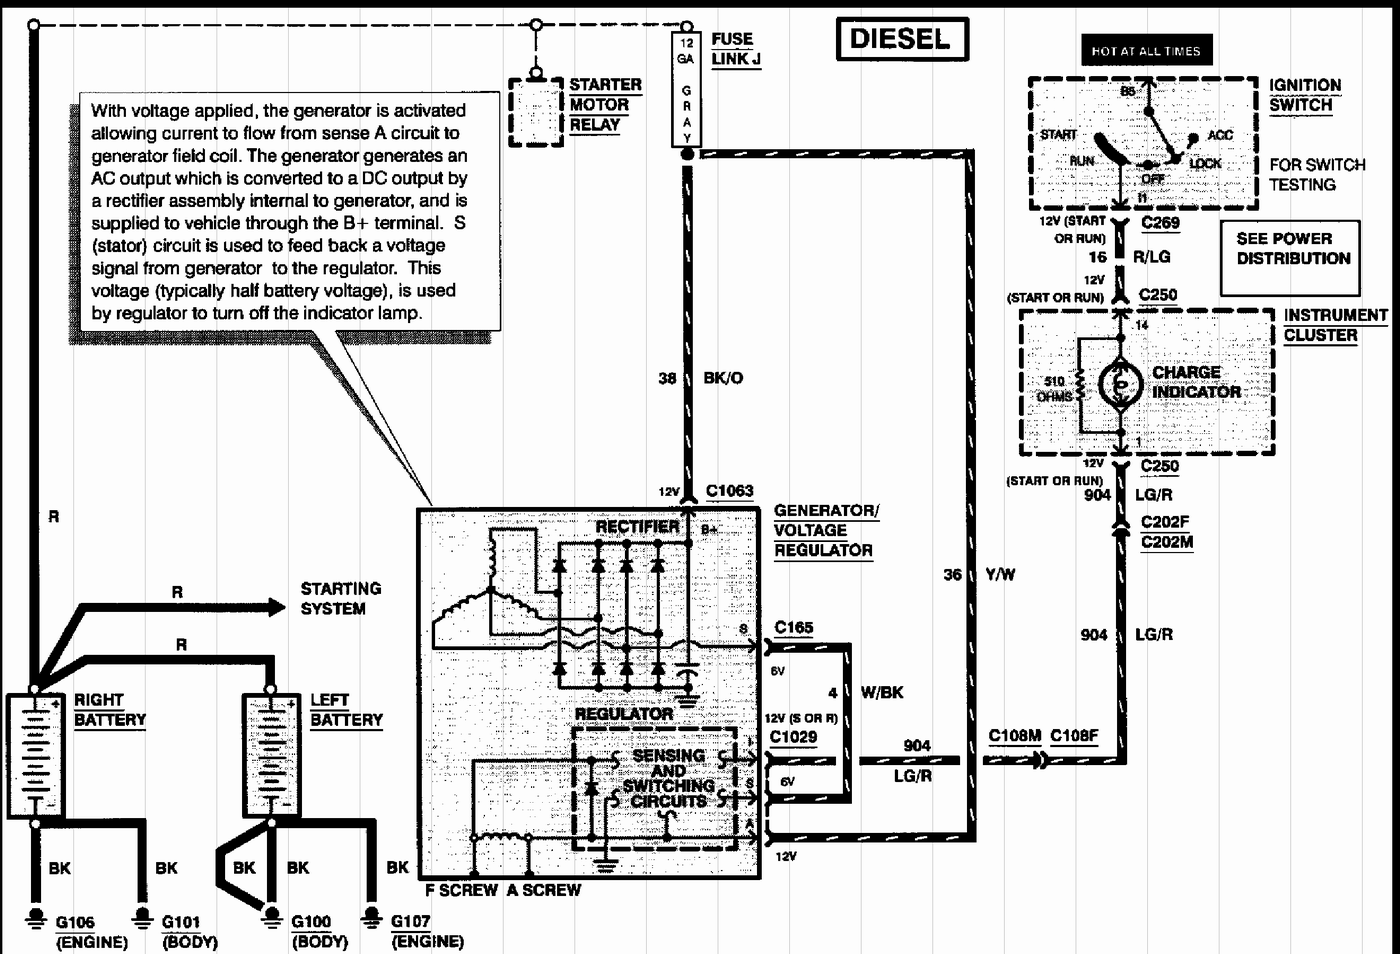 hight resolution of i need a wiring diagram for a 97 f350 7 3 powerstroke with